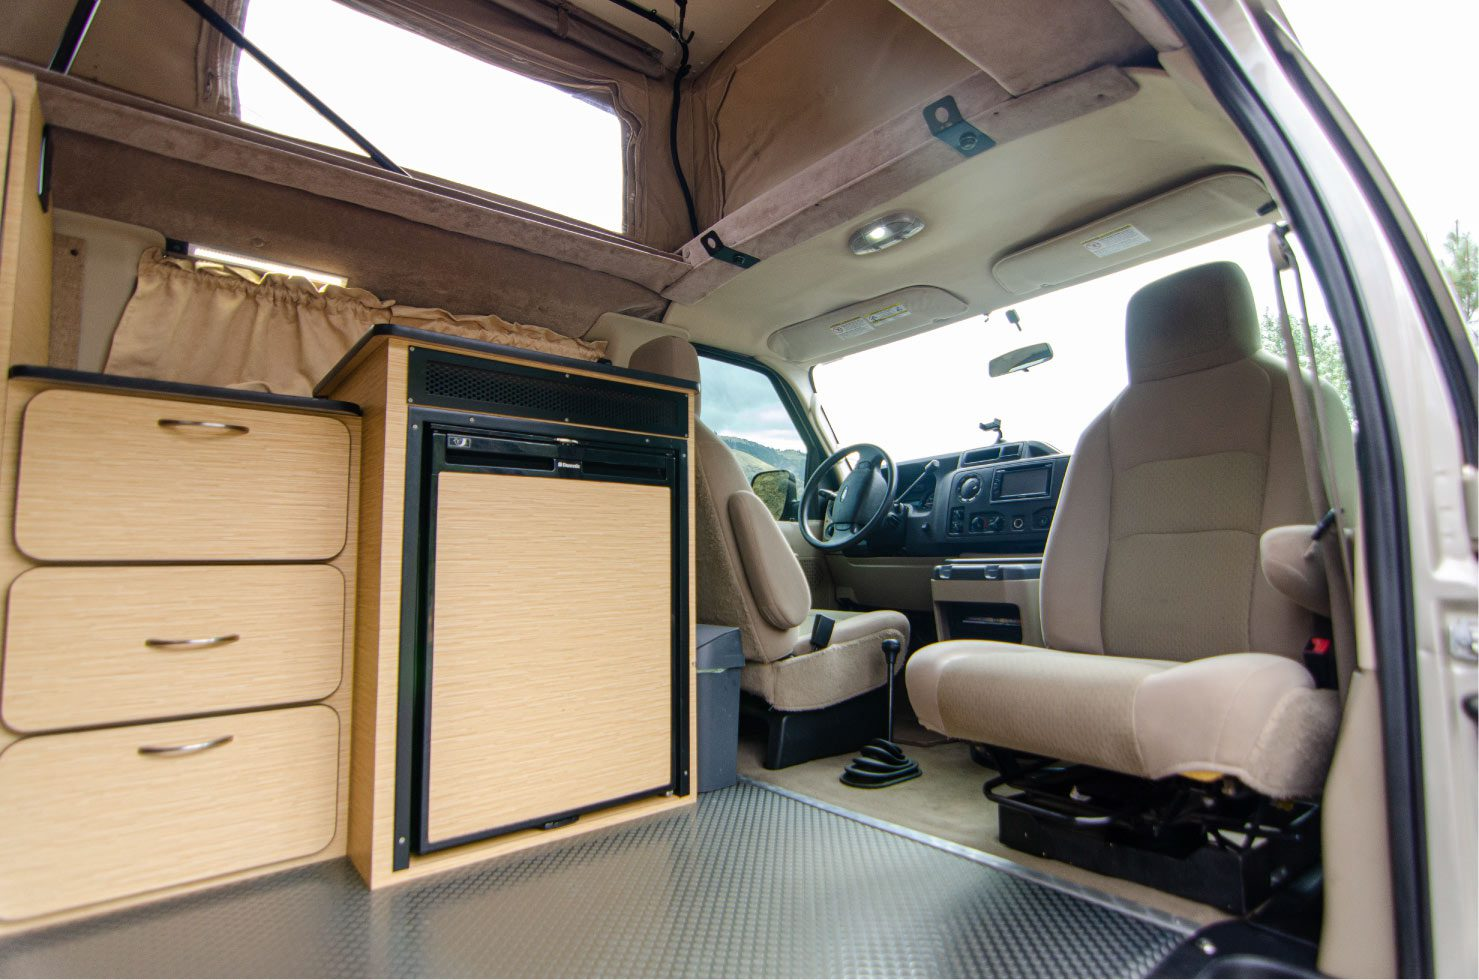 Passenger swivel seat on a Ford E-Series 4x4 Econoline Sportsmobile RB50 Layout Campervan conversion for sale